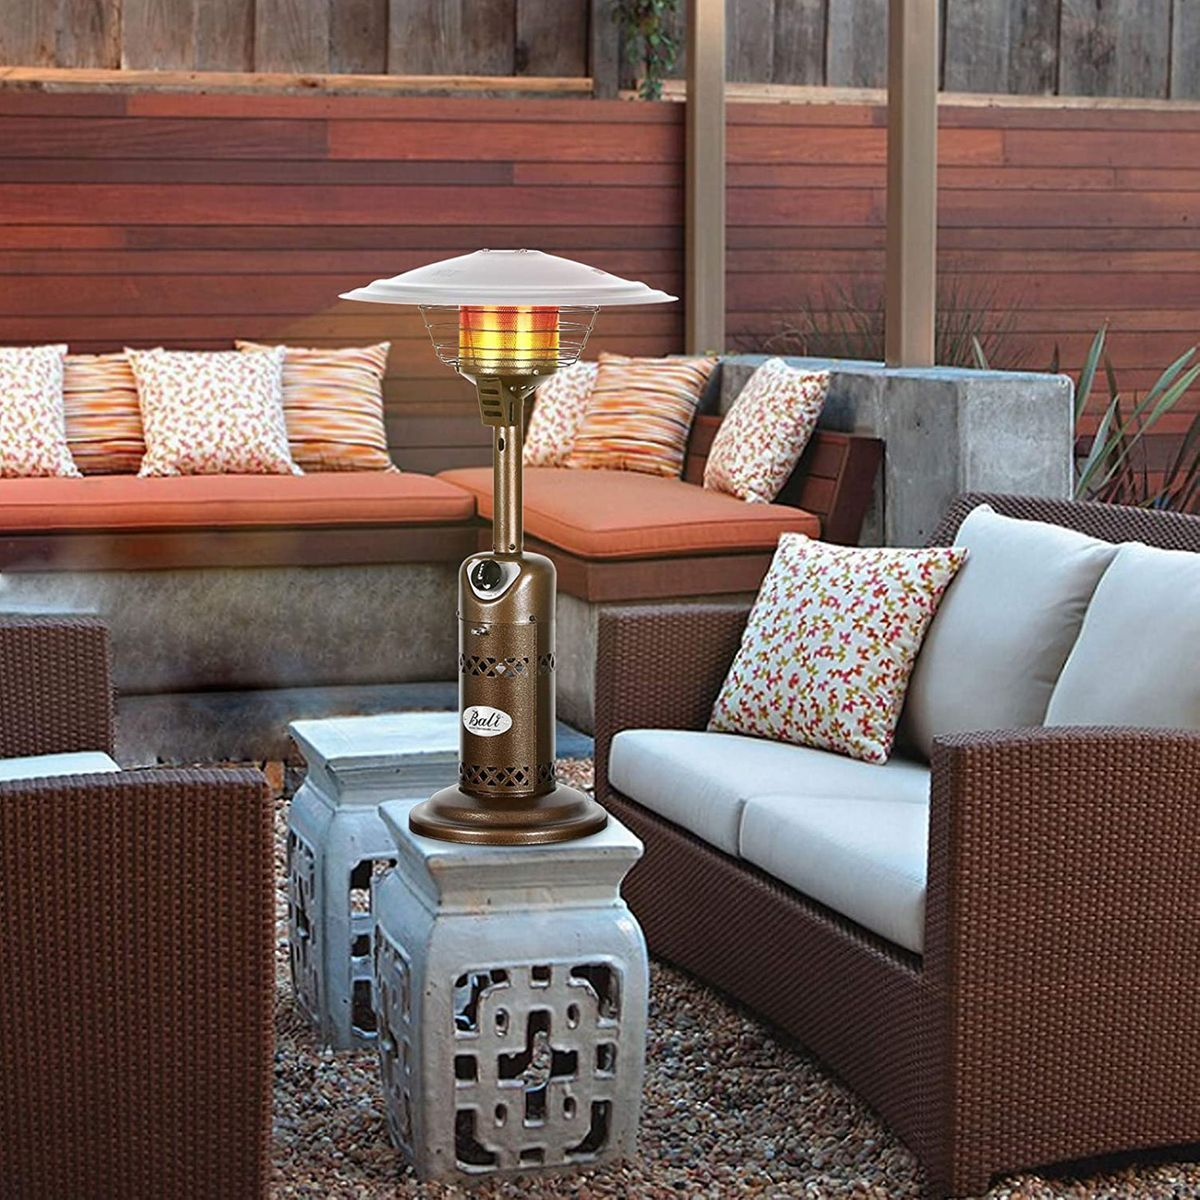 Have You Bought A Space Heater Yet Outdoor Heaters Propane Heater Portable Outdoor Heater